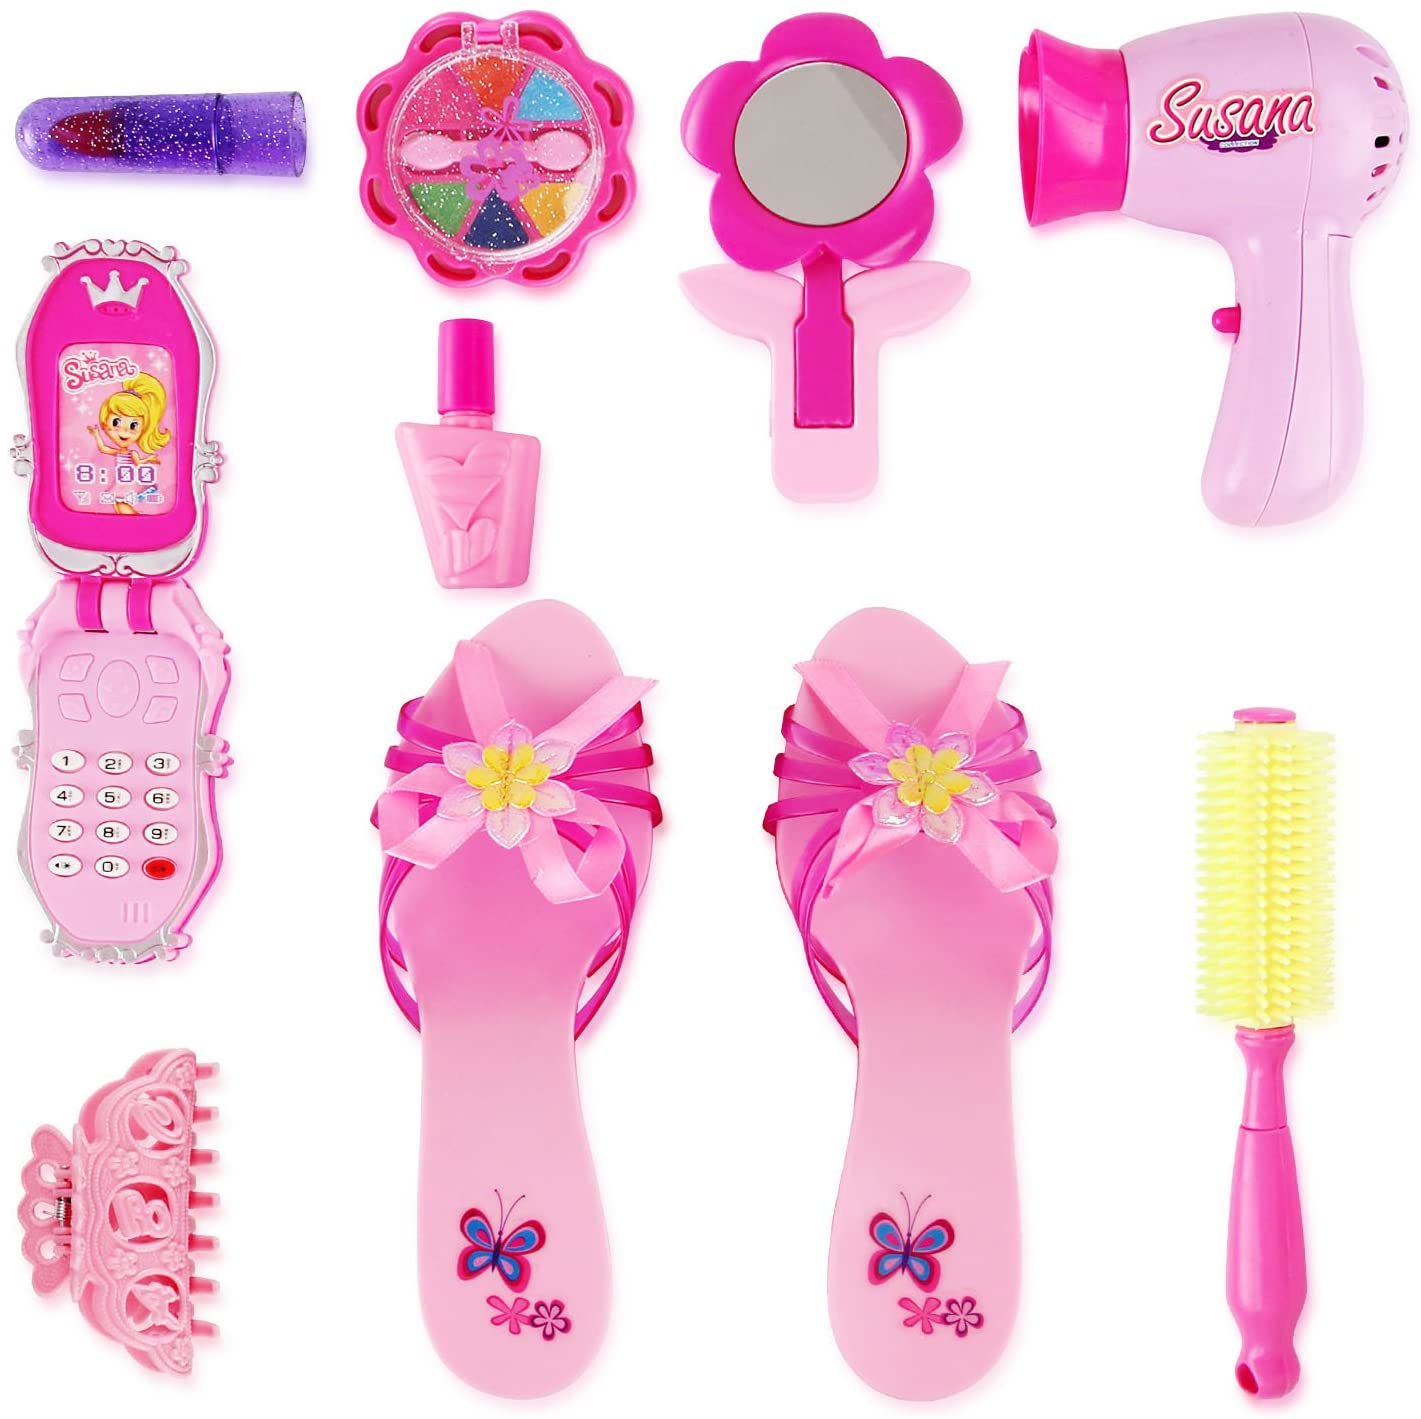 Liberty Imports Stylish Little Princess Dress Up - Beauty Vanity Realistic Pretend Play Set - Ideal Imaginative Pink Fashion Kit for Girls with Hair Dryer, Shoes and Accessories